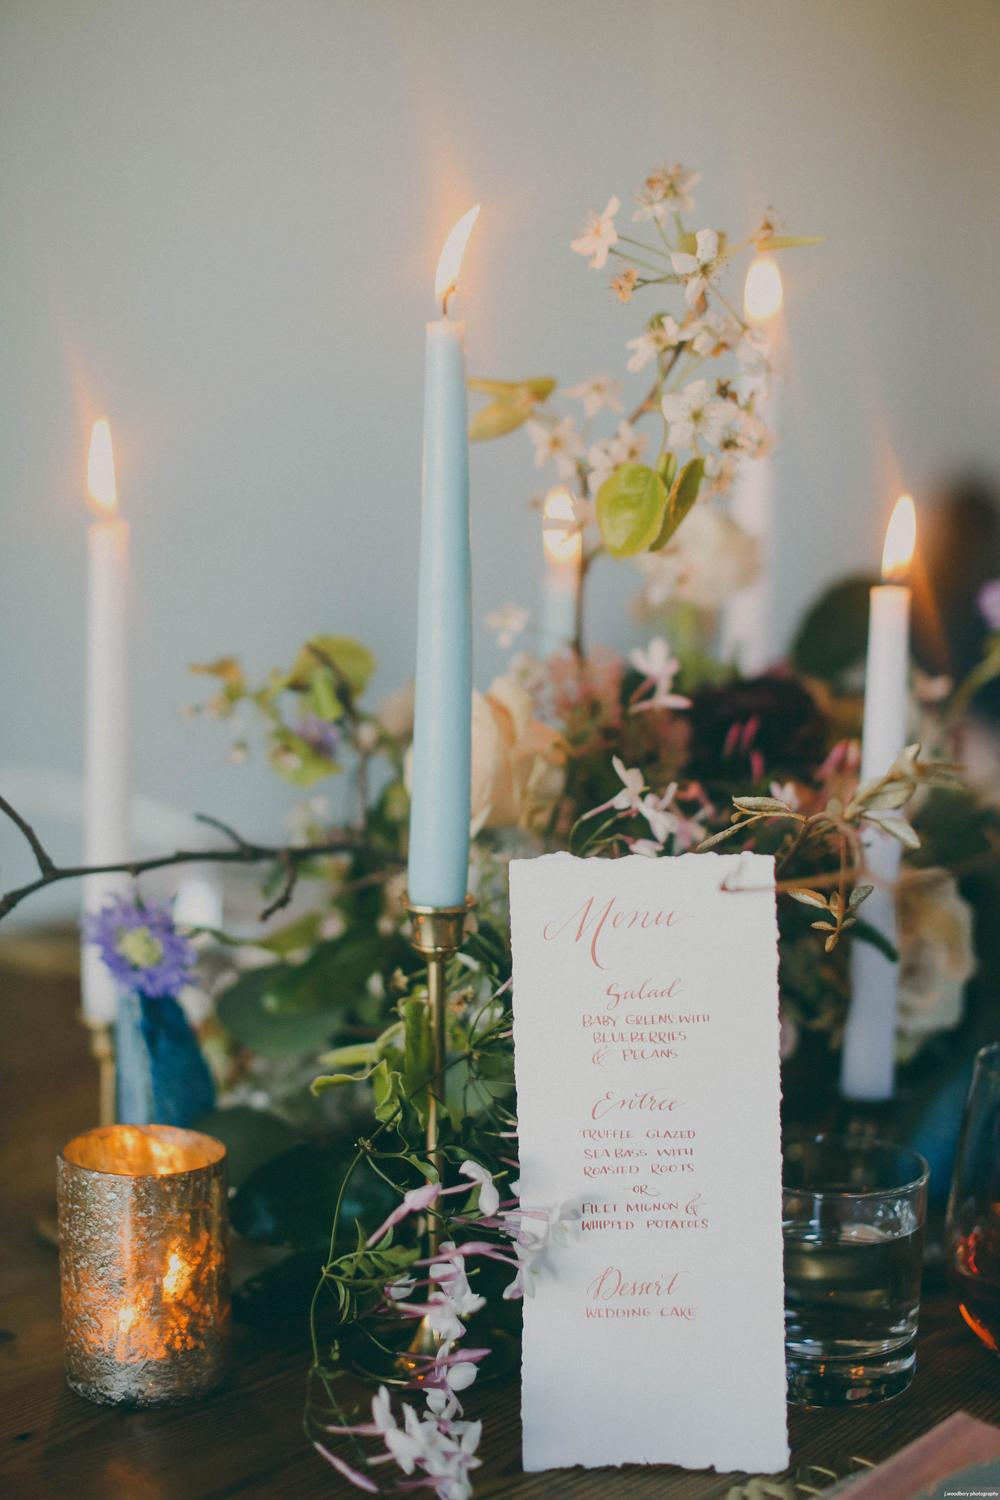 Wedding Menu with Copper Calligraphy